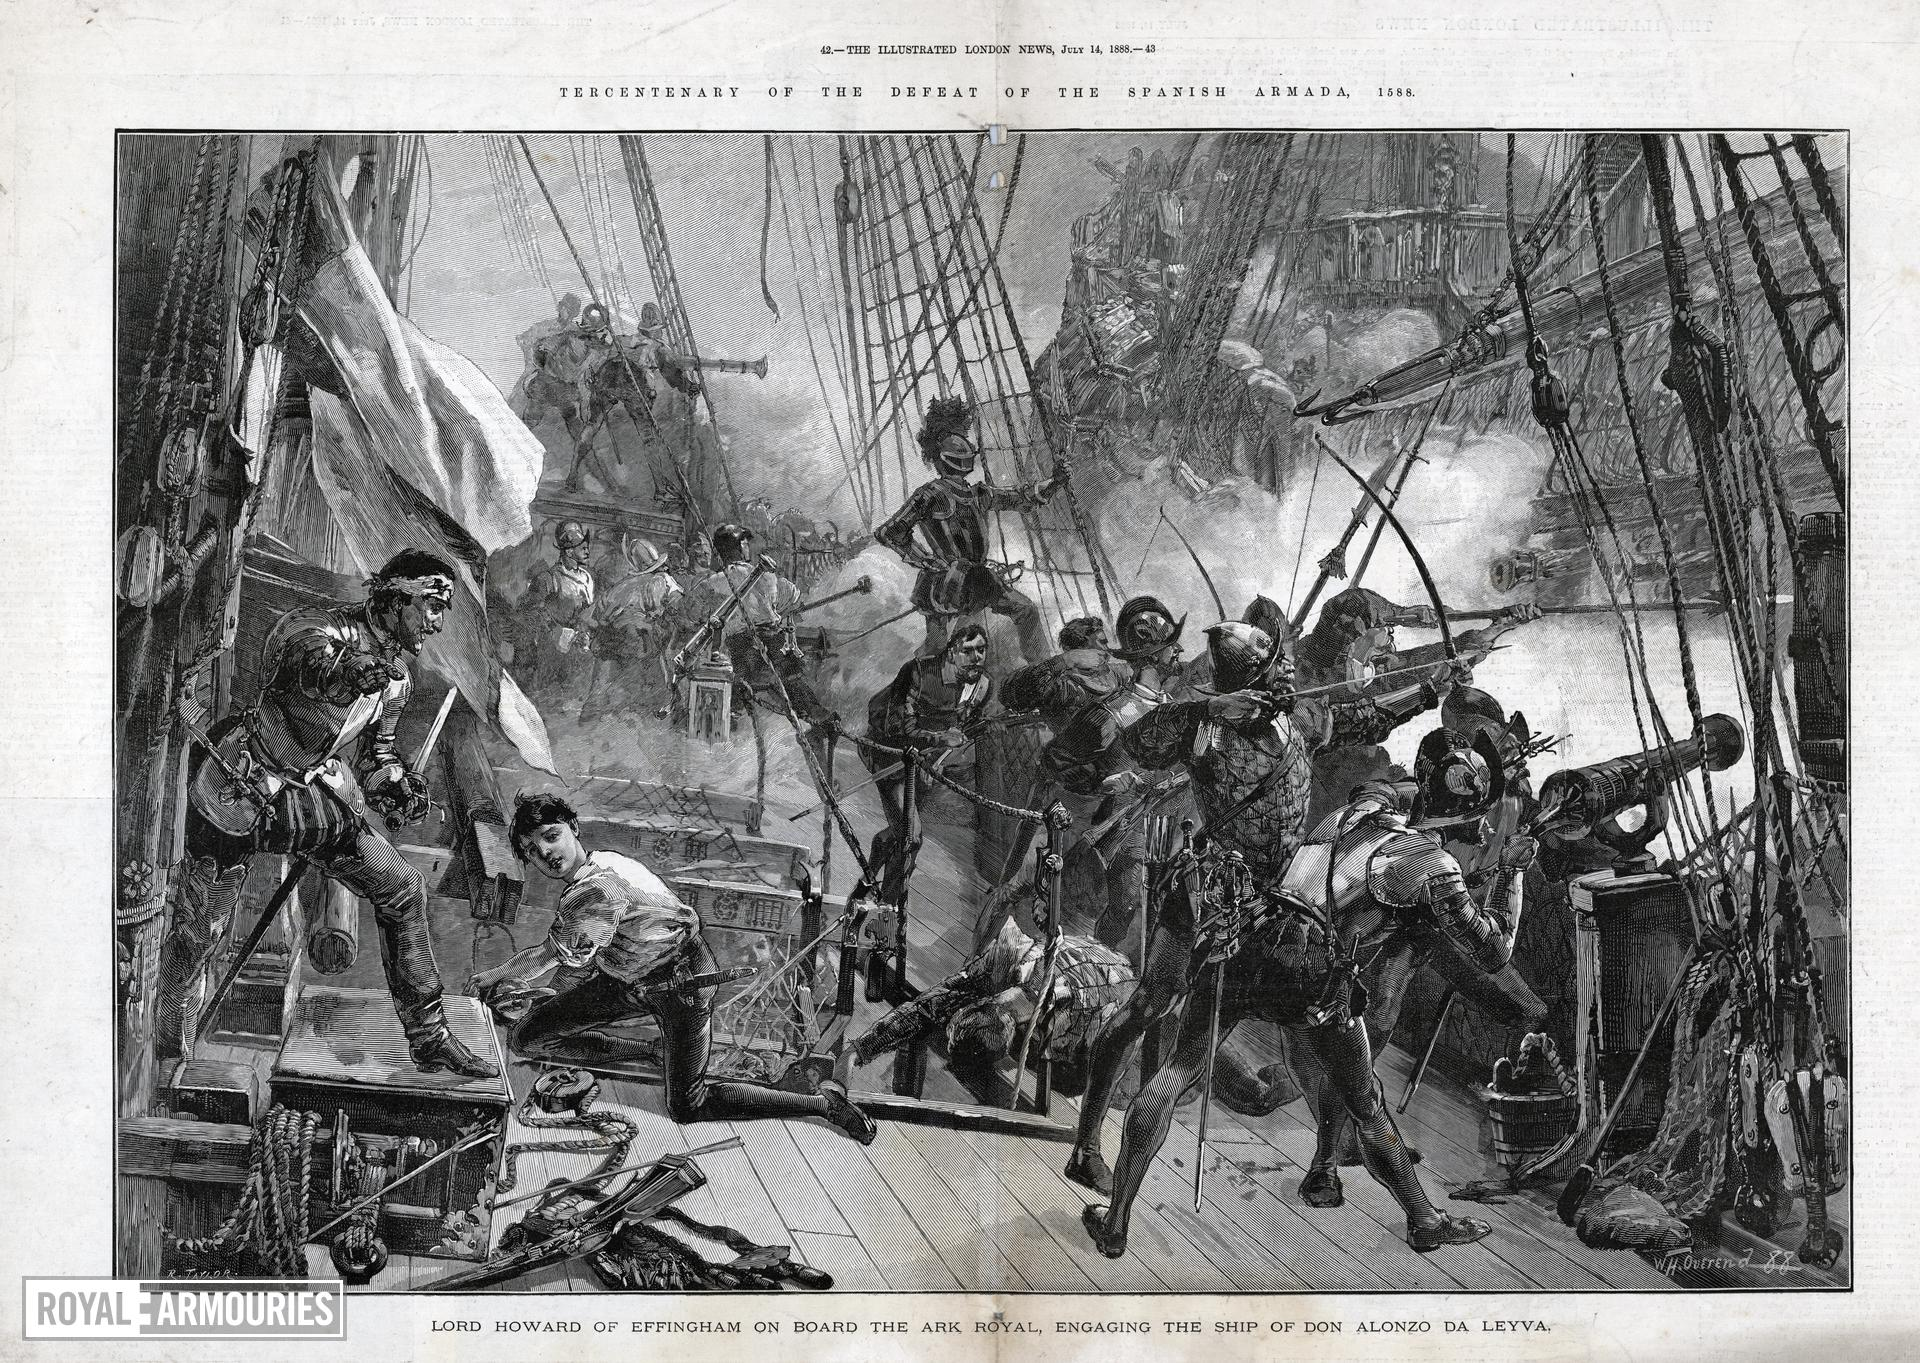 Engraving, 'Lord Howard of Effingham on Board the Ark Royal, Engaging the Ship of Don Alonzo da Leyva'